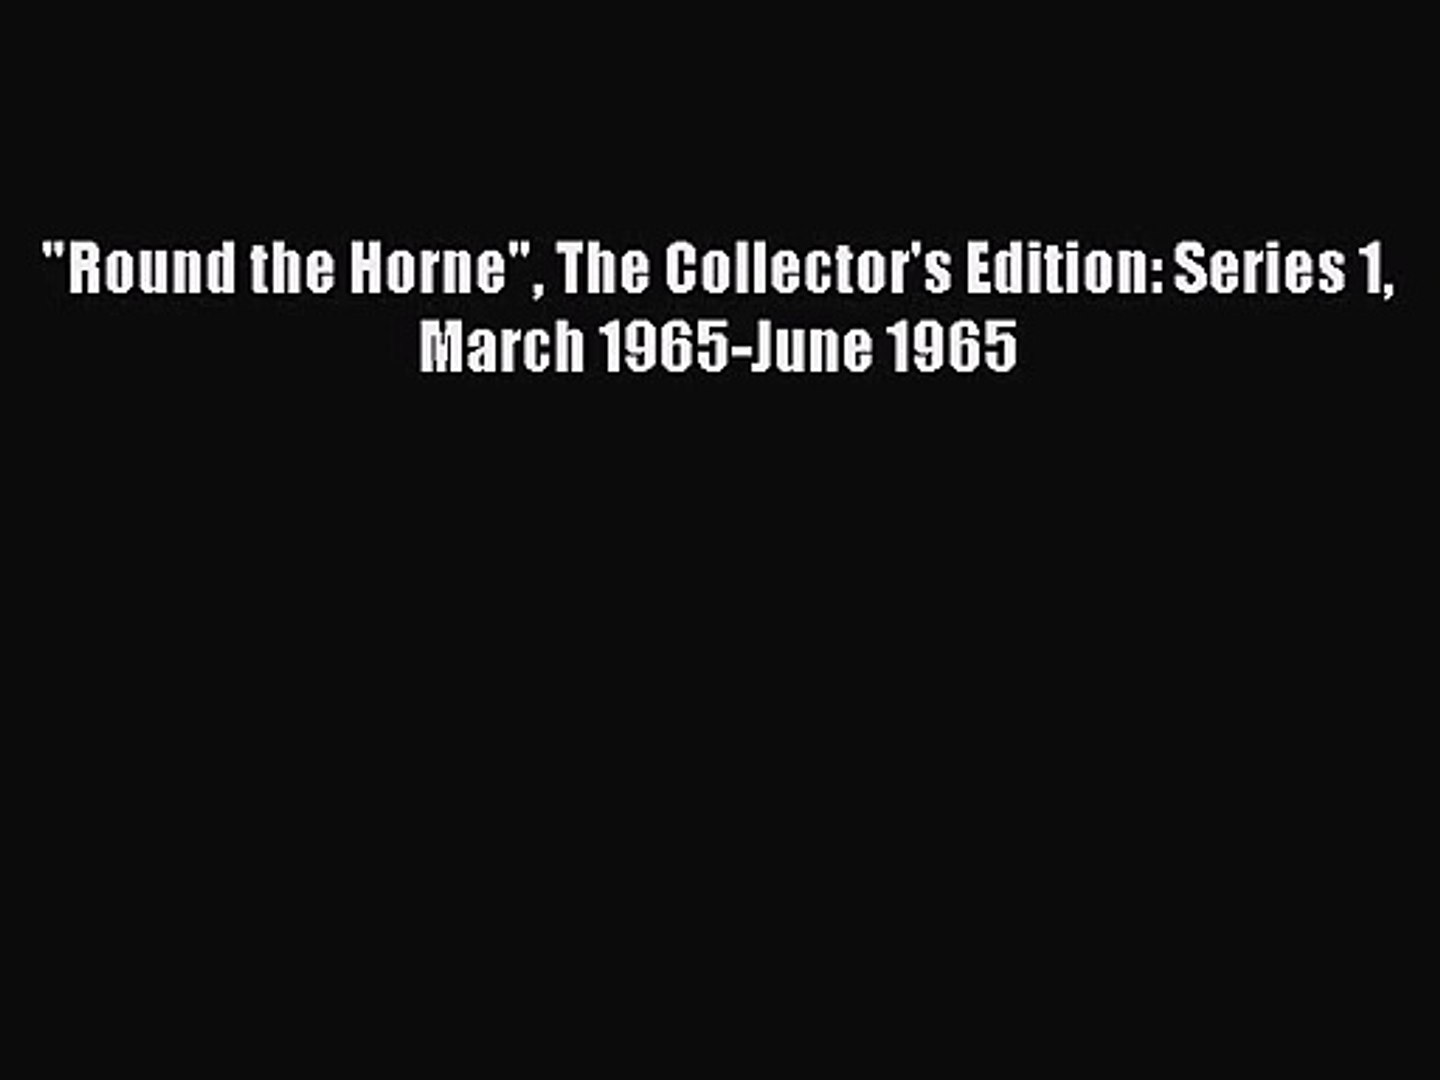 Round the Horne The Collector's Edition: Series 1 March 1965-June 1965 [PDF] Full Ebook